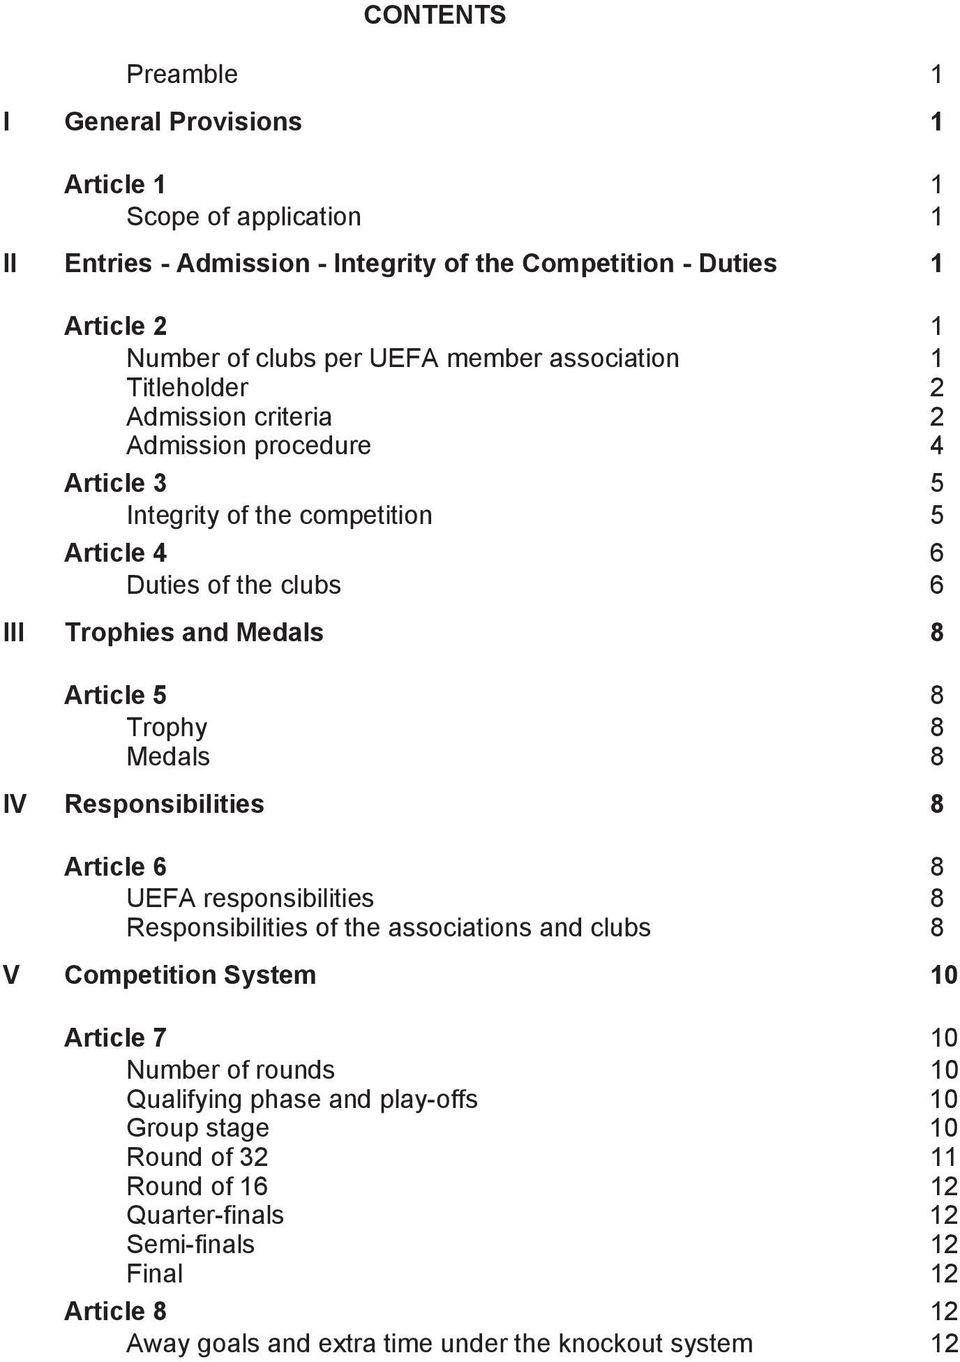 Article 5 8 Trophy Medals 8 8 IV Responsibilities 8 Article 6 8 UEFA responsibilities Responsibilities of the associations and clubs 8 8 V Competition System 10 Article 7 10 Number of